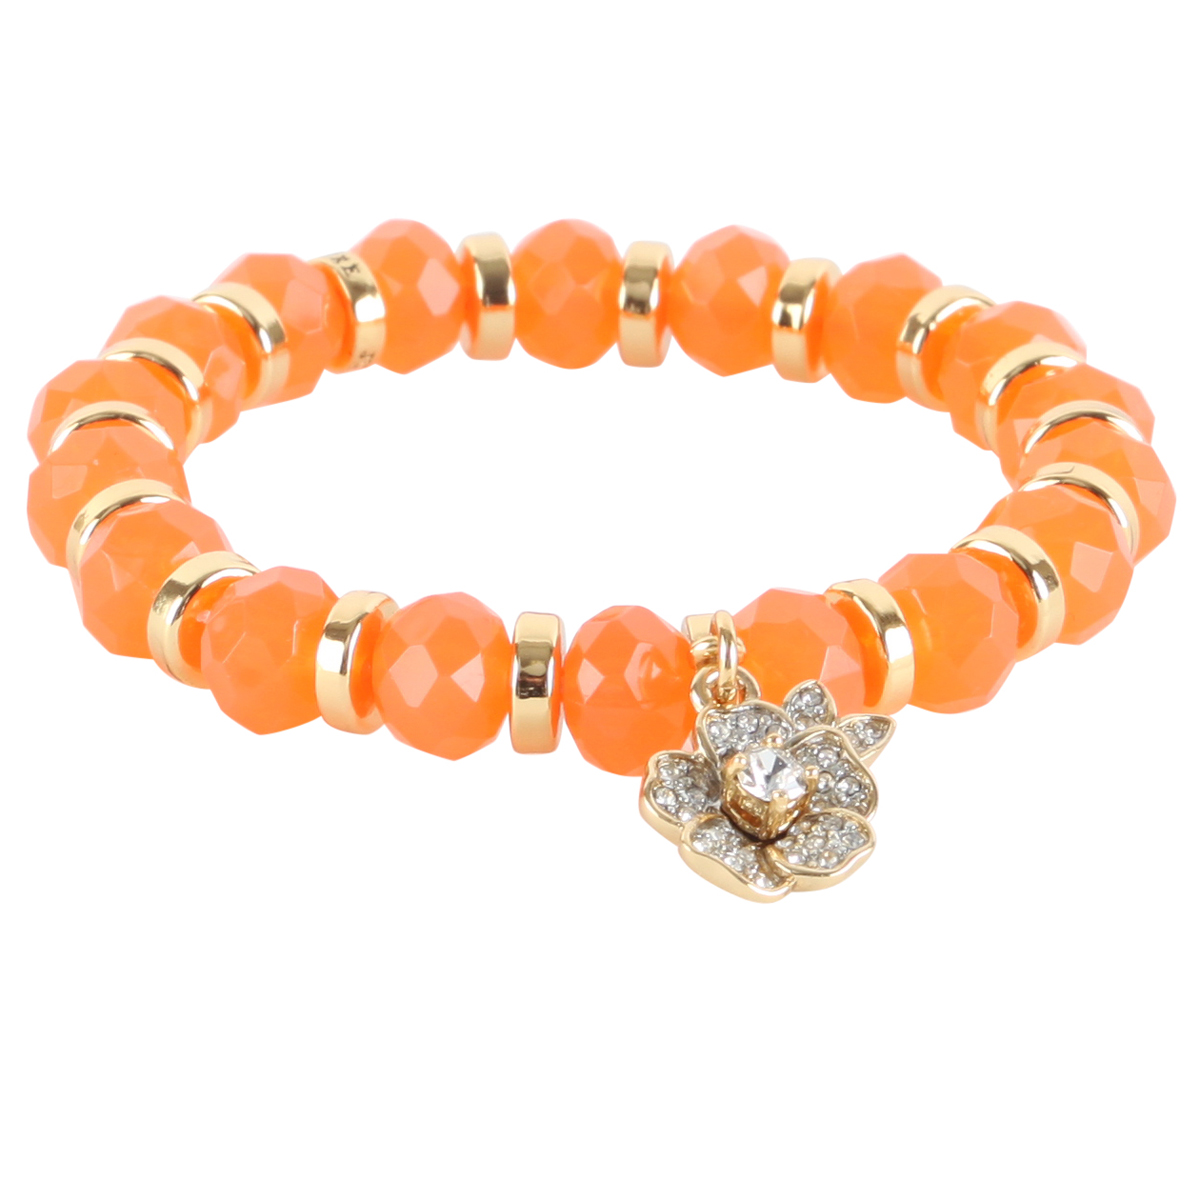 Juicy Couture Stretch Beaded Friendship Pave Flower Bracelet- Orange